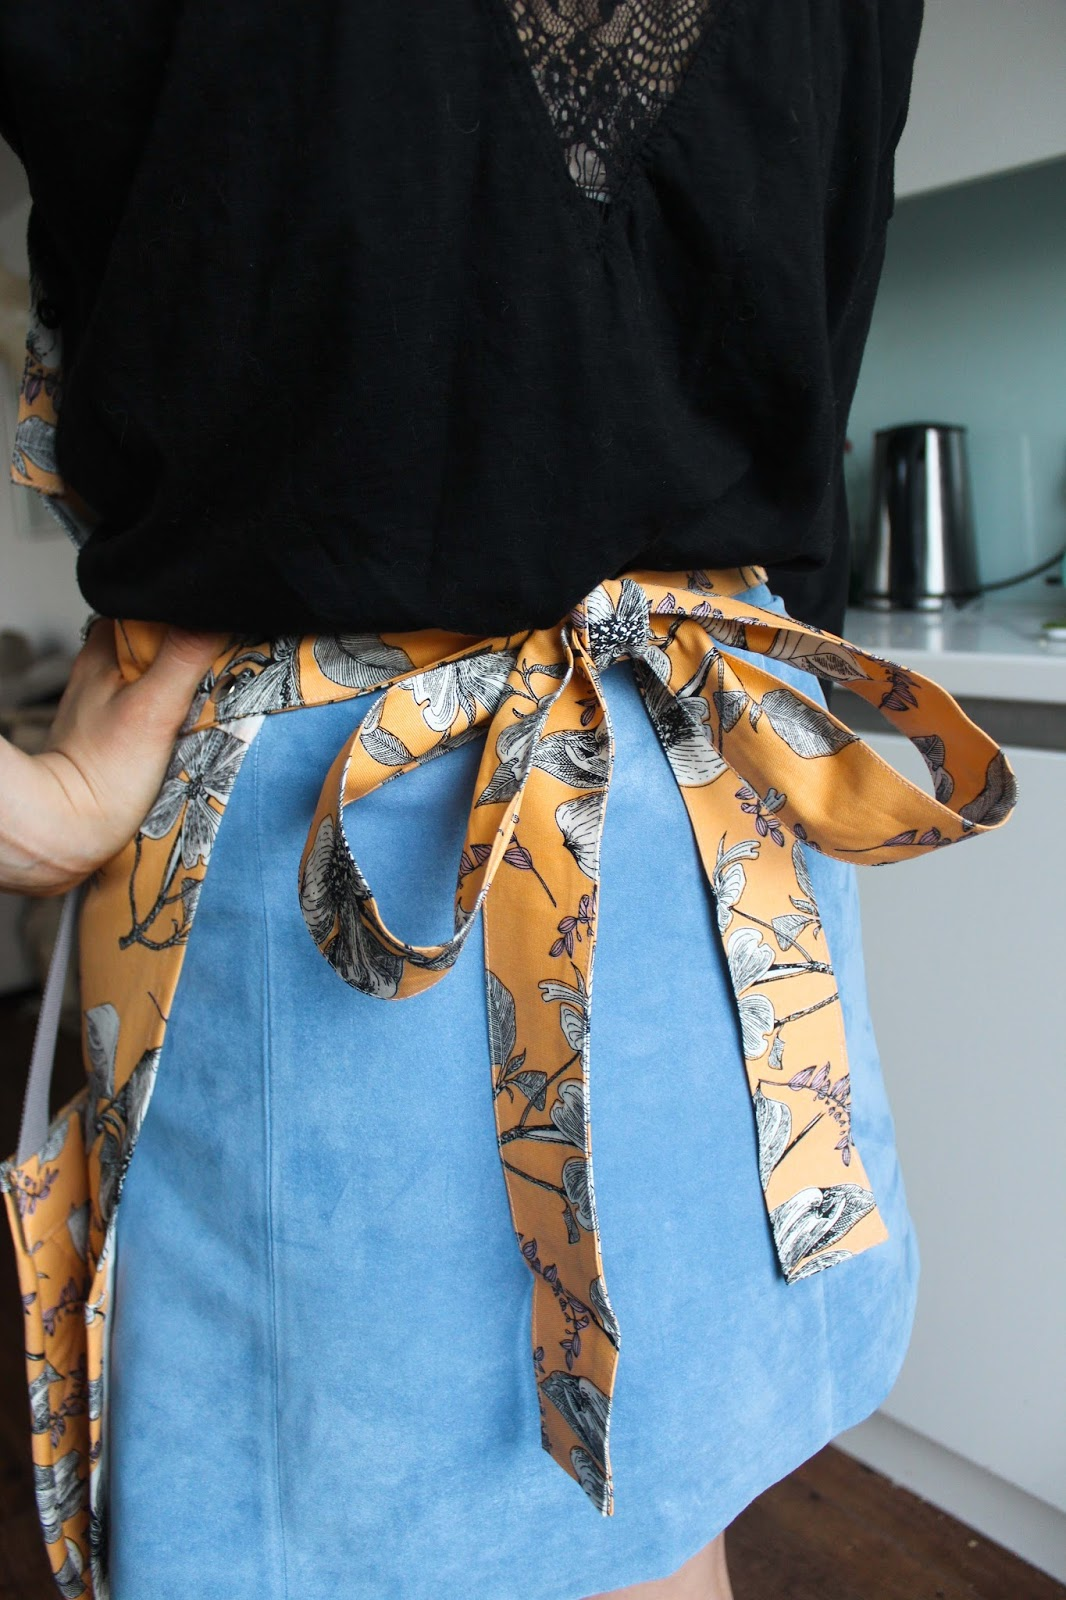 Lobster homeware apron